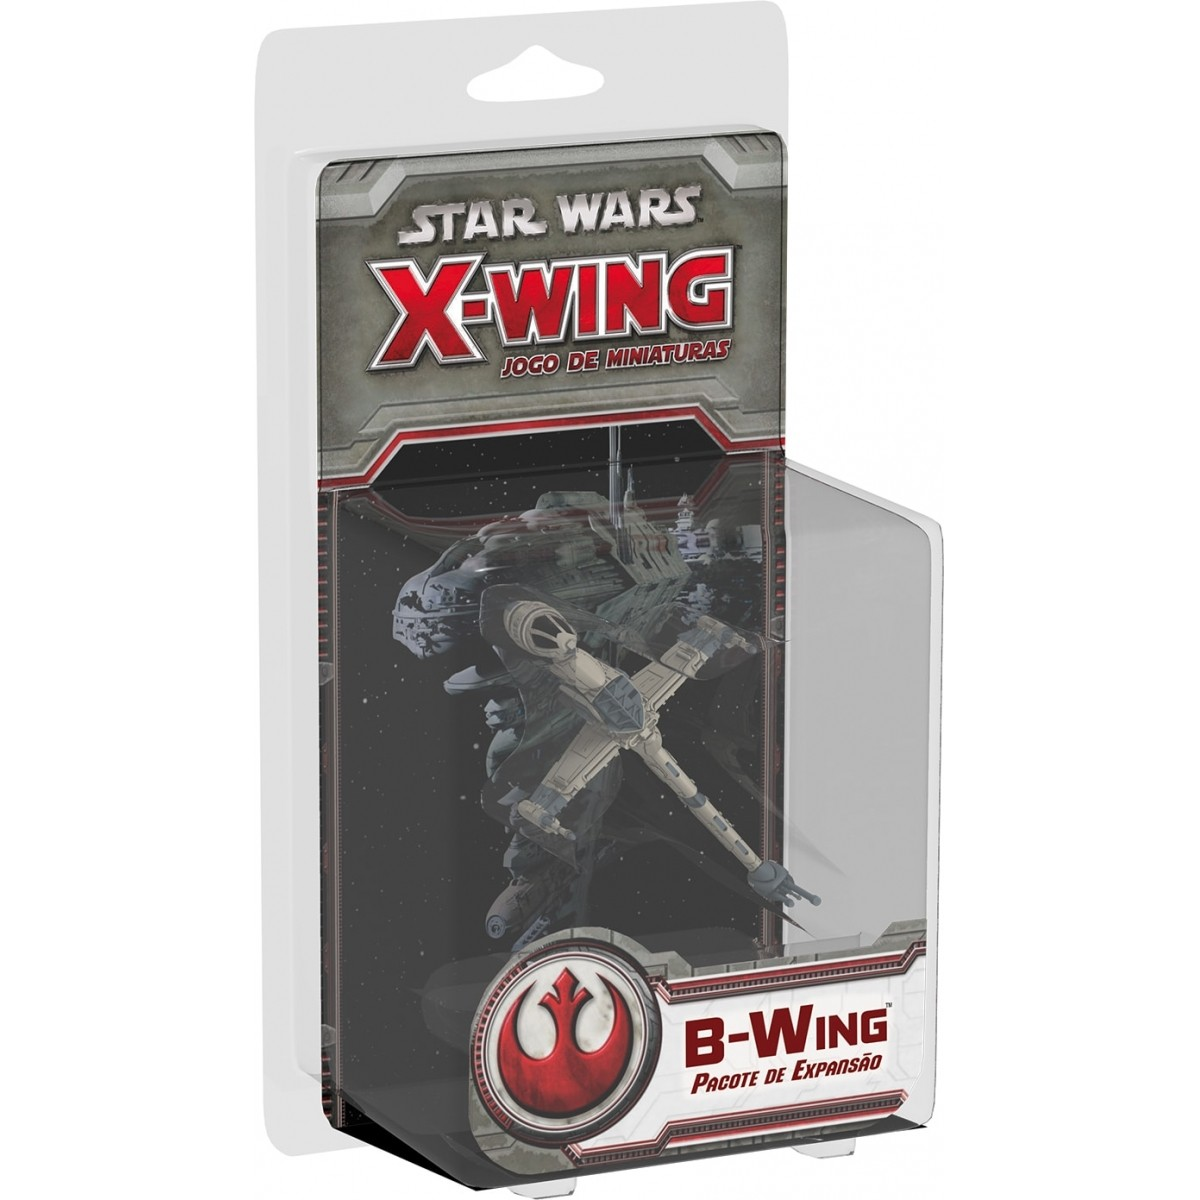 Star Wars X Wing B-Wing Galapagos SWX014  - Place Games